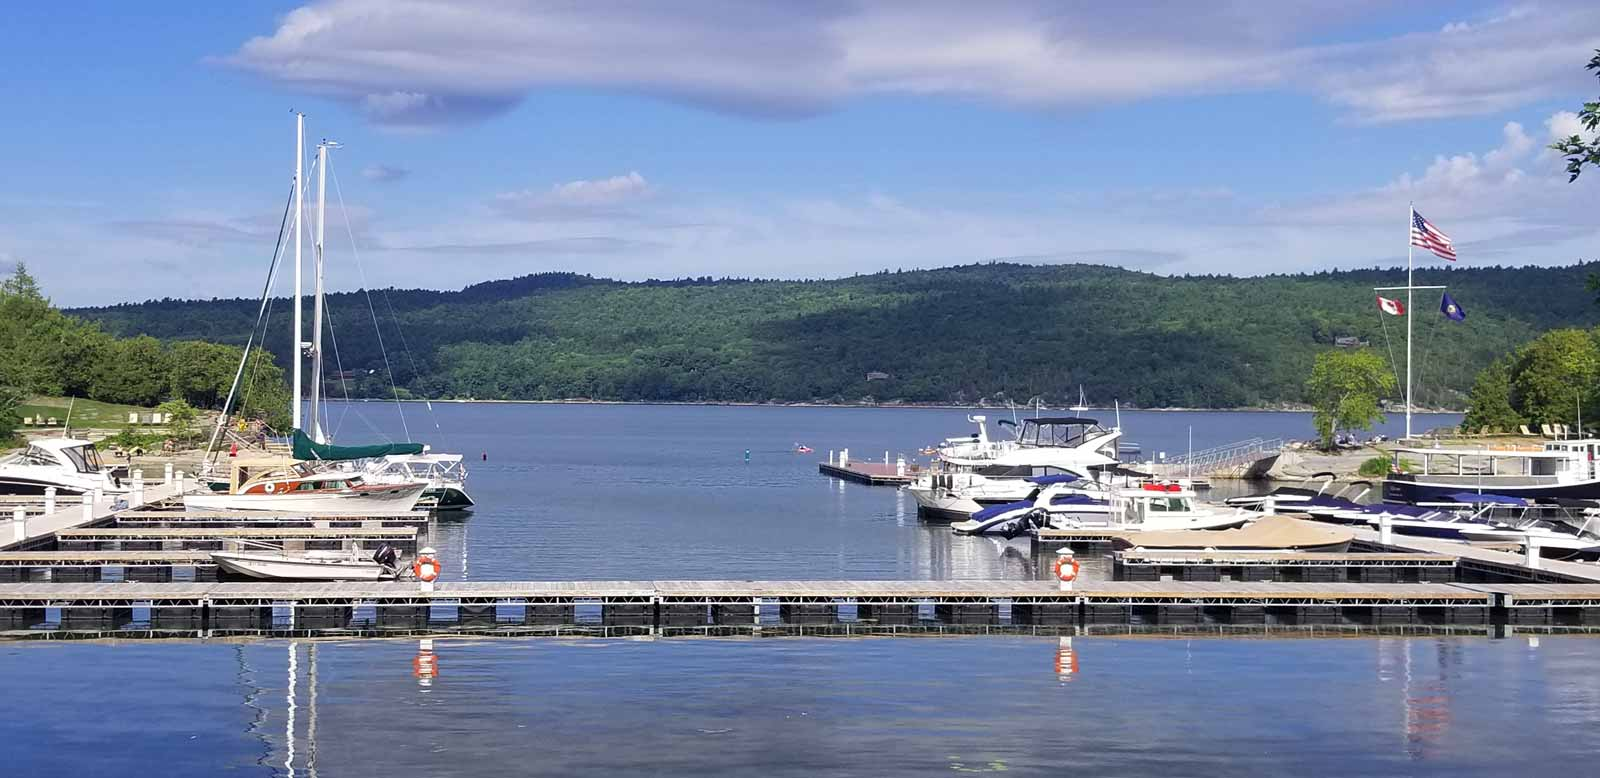 Marina on Lake Champlain